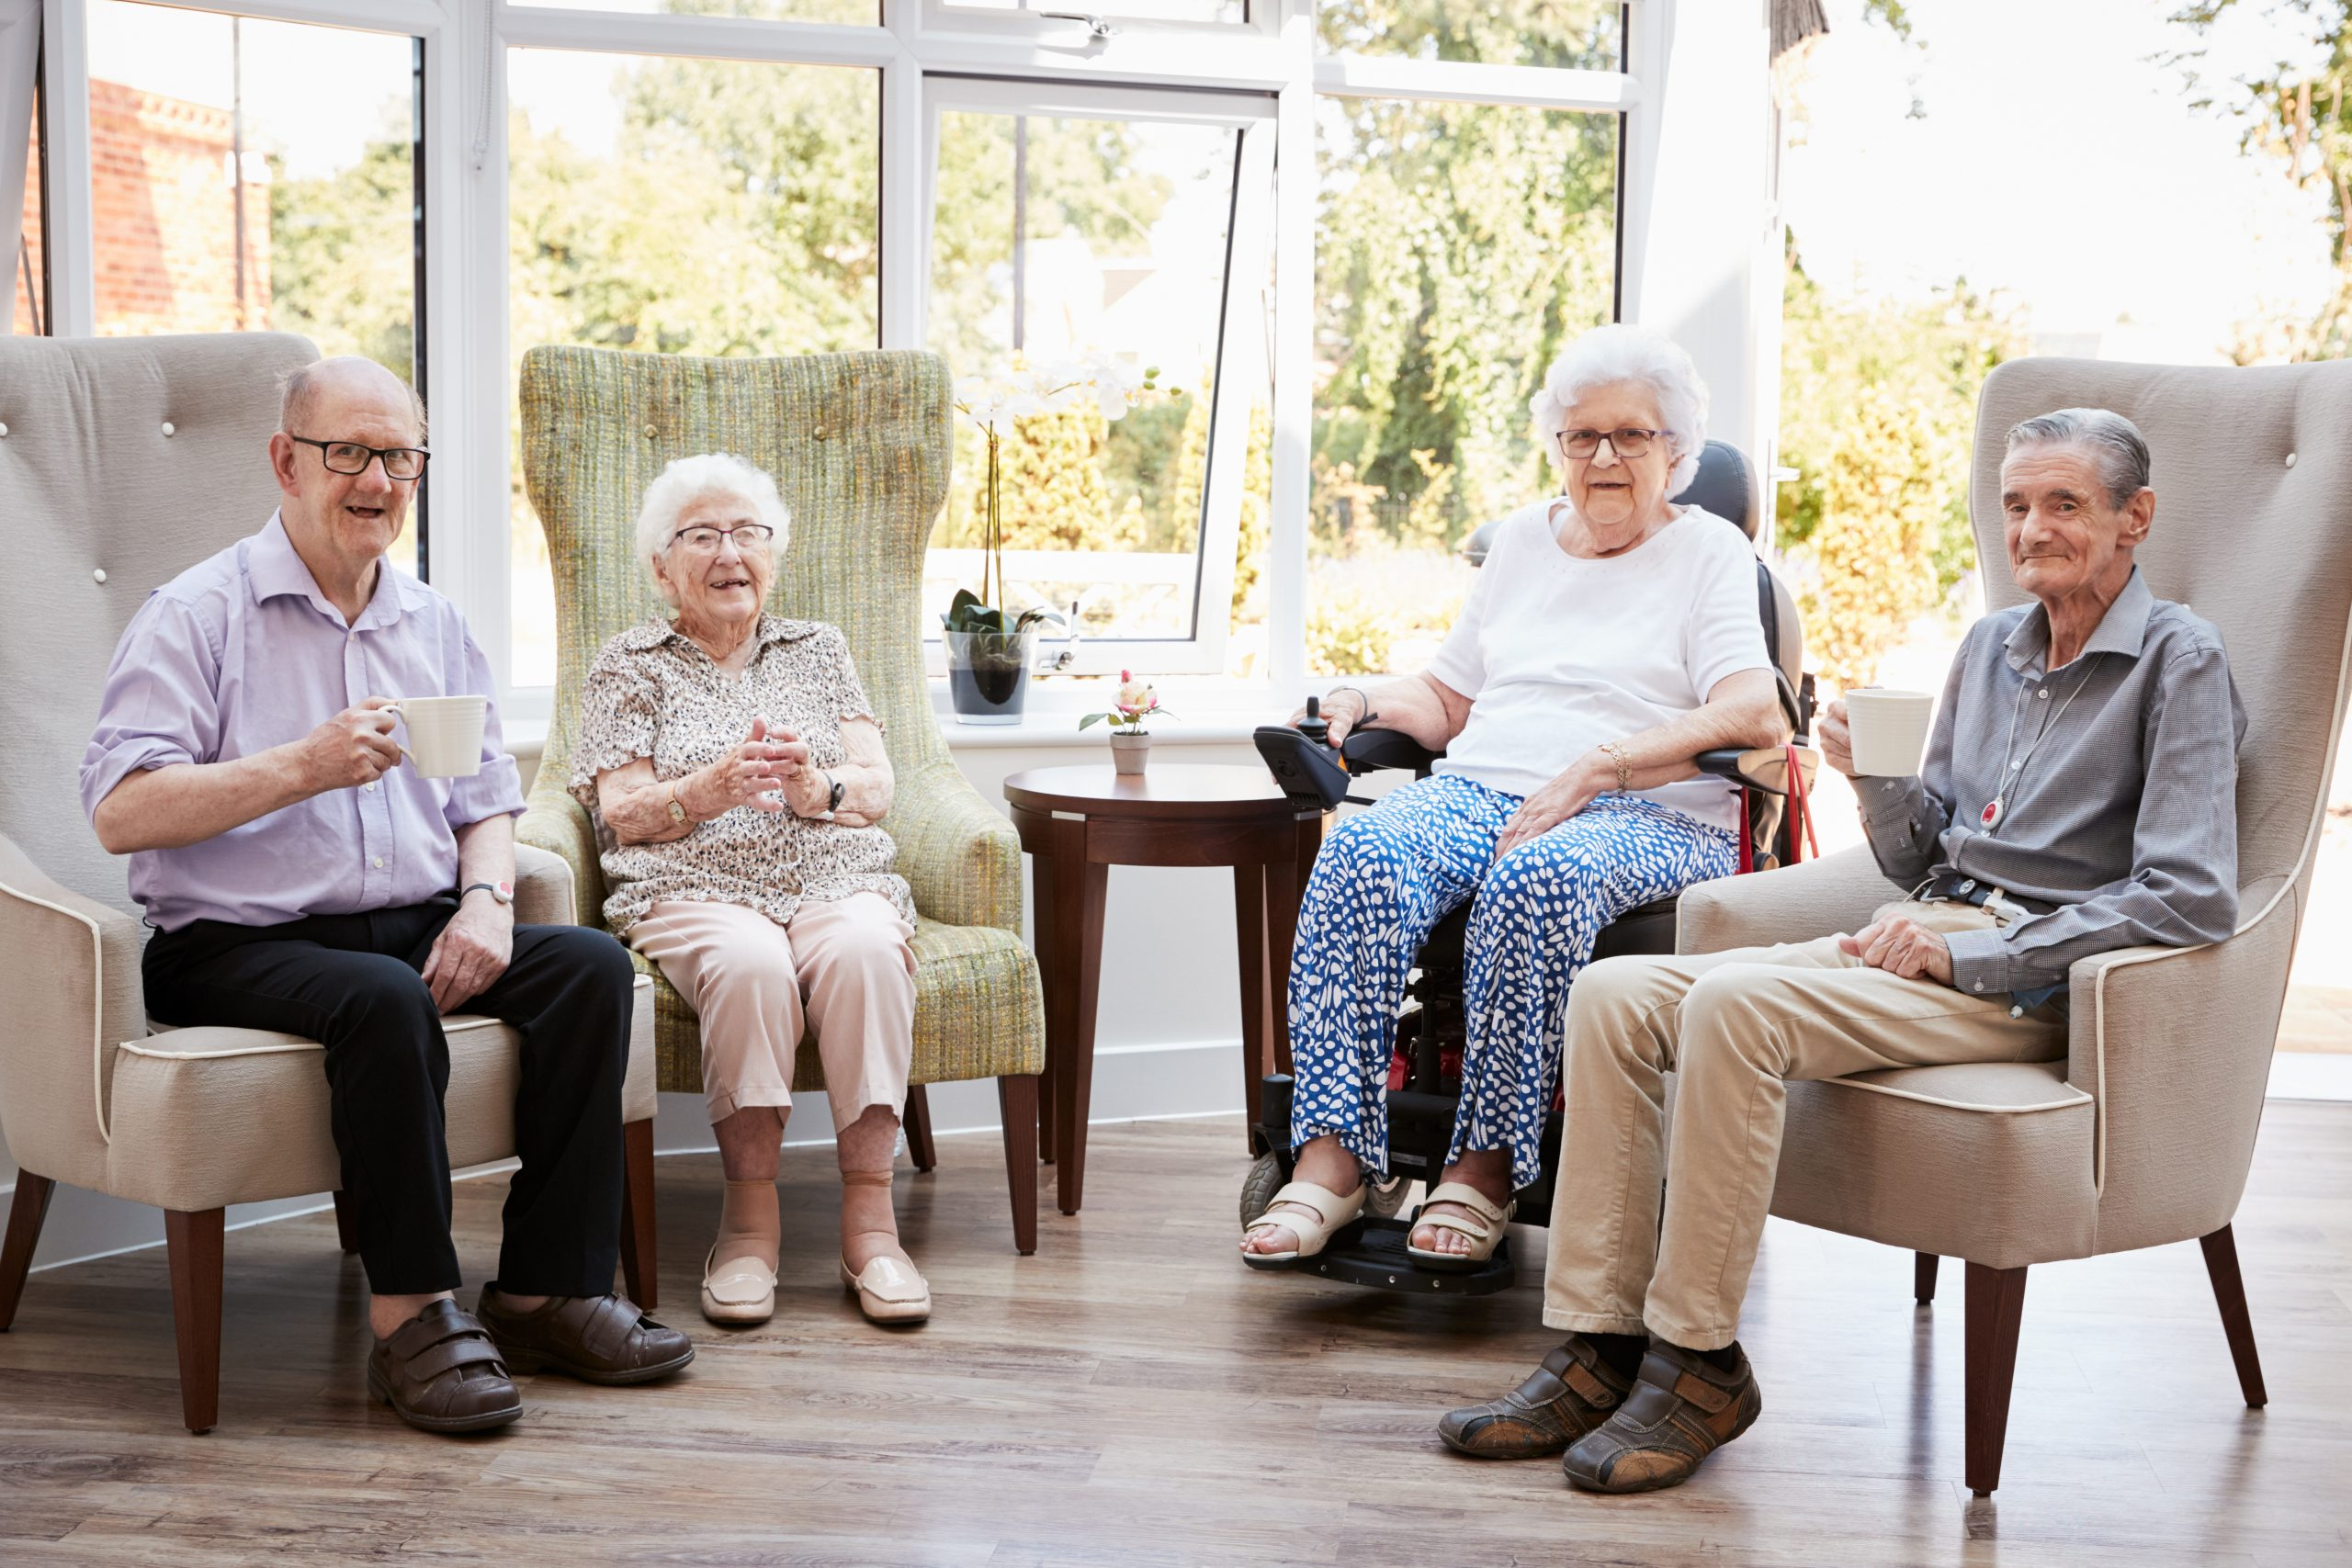 Residents in an old people's home - representing nursing and dementia